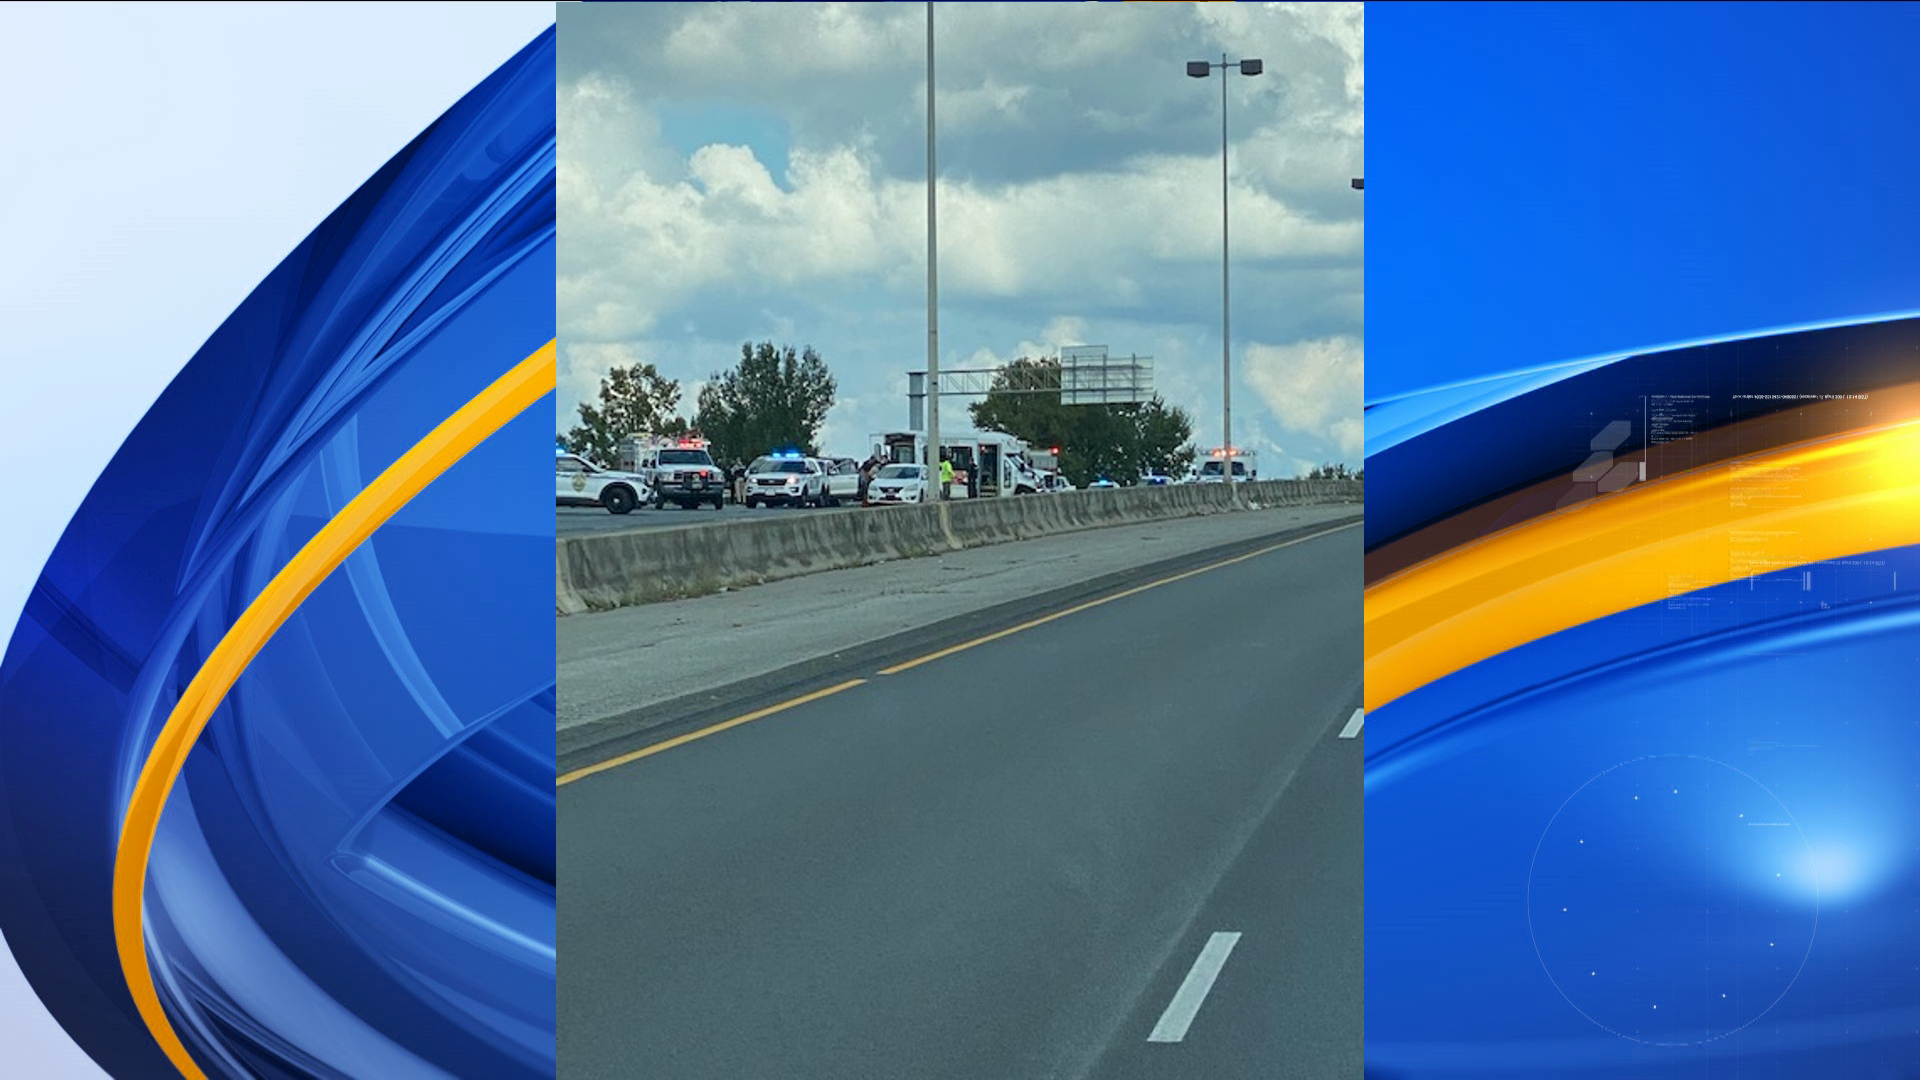 Three people have been injured in a wreck on WB I-565 near Madison Blvd. ALL westbound traffic is shut down at Research Park.